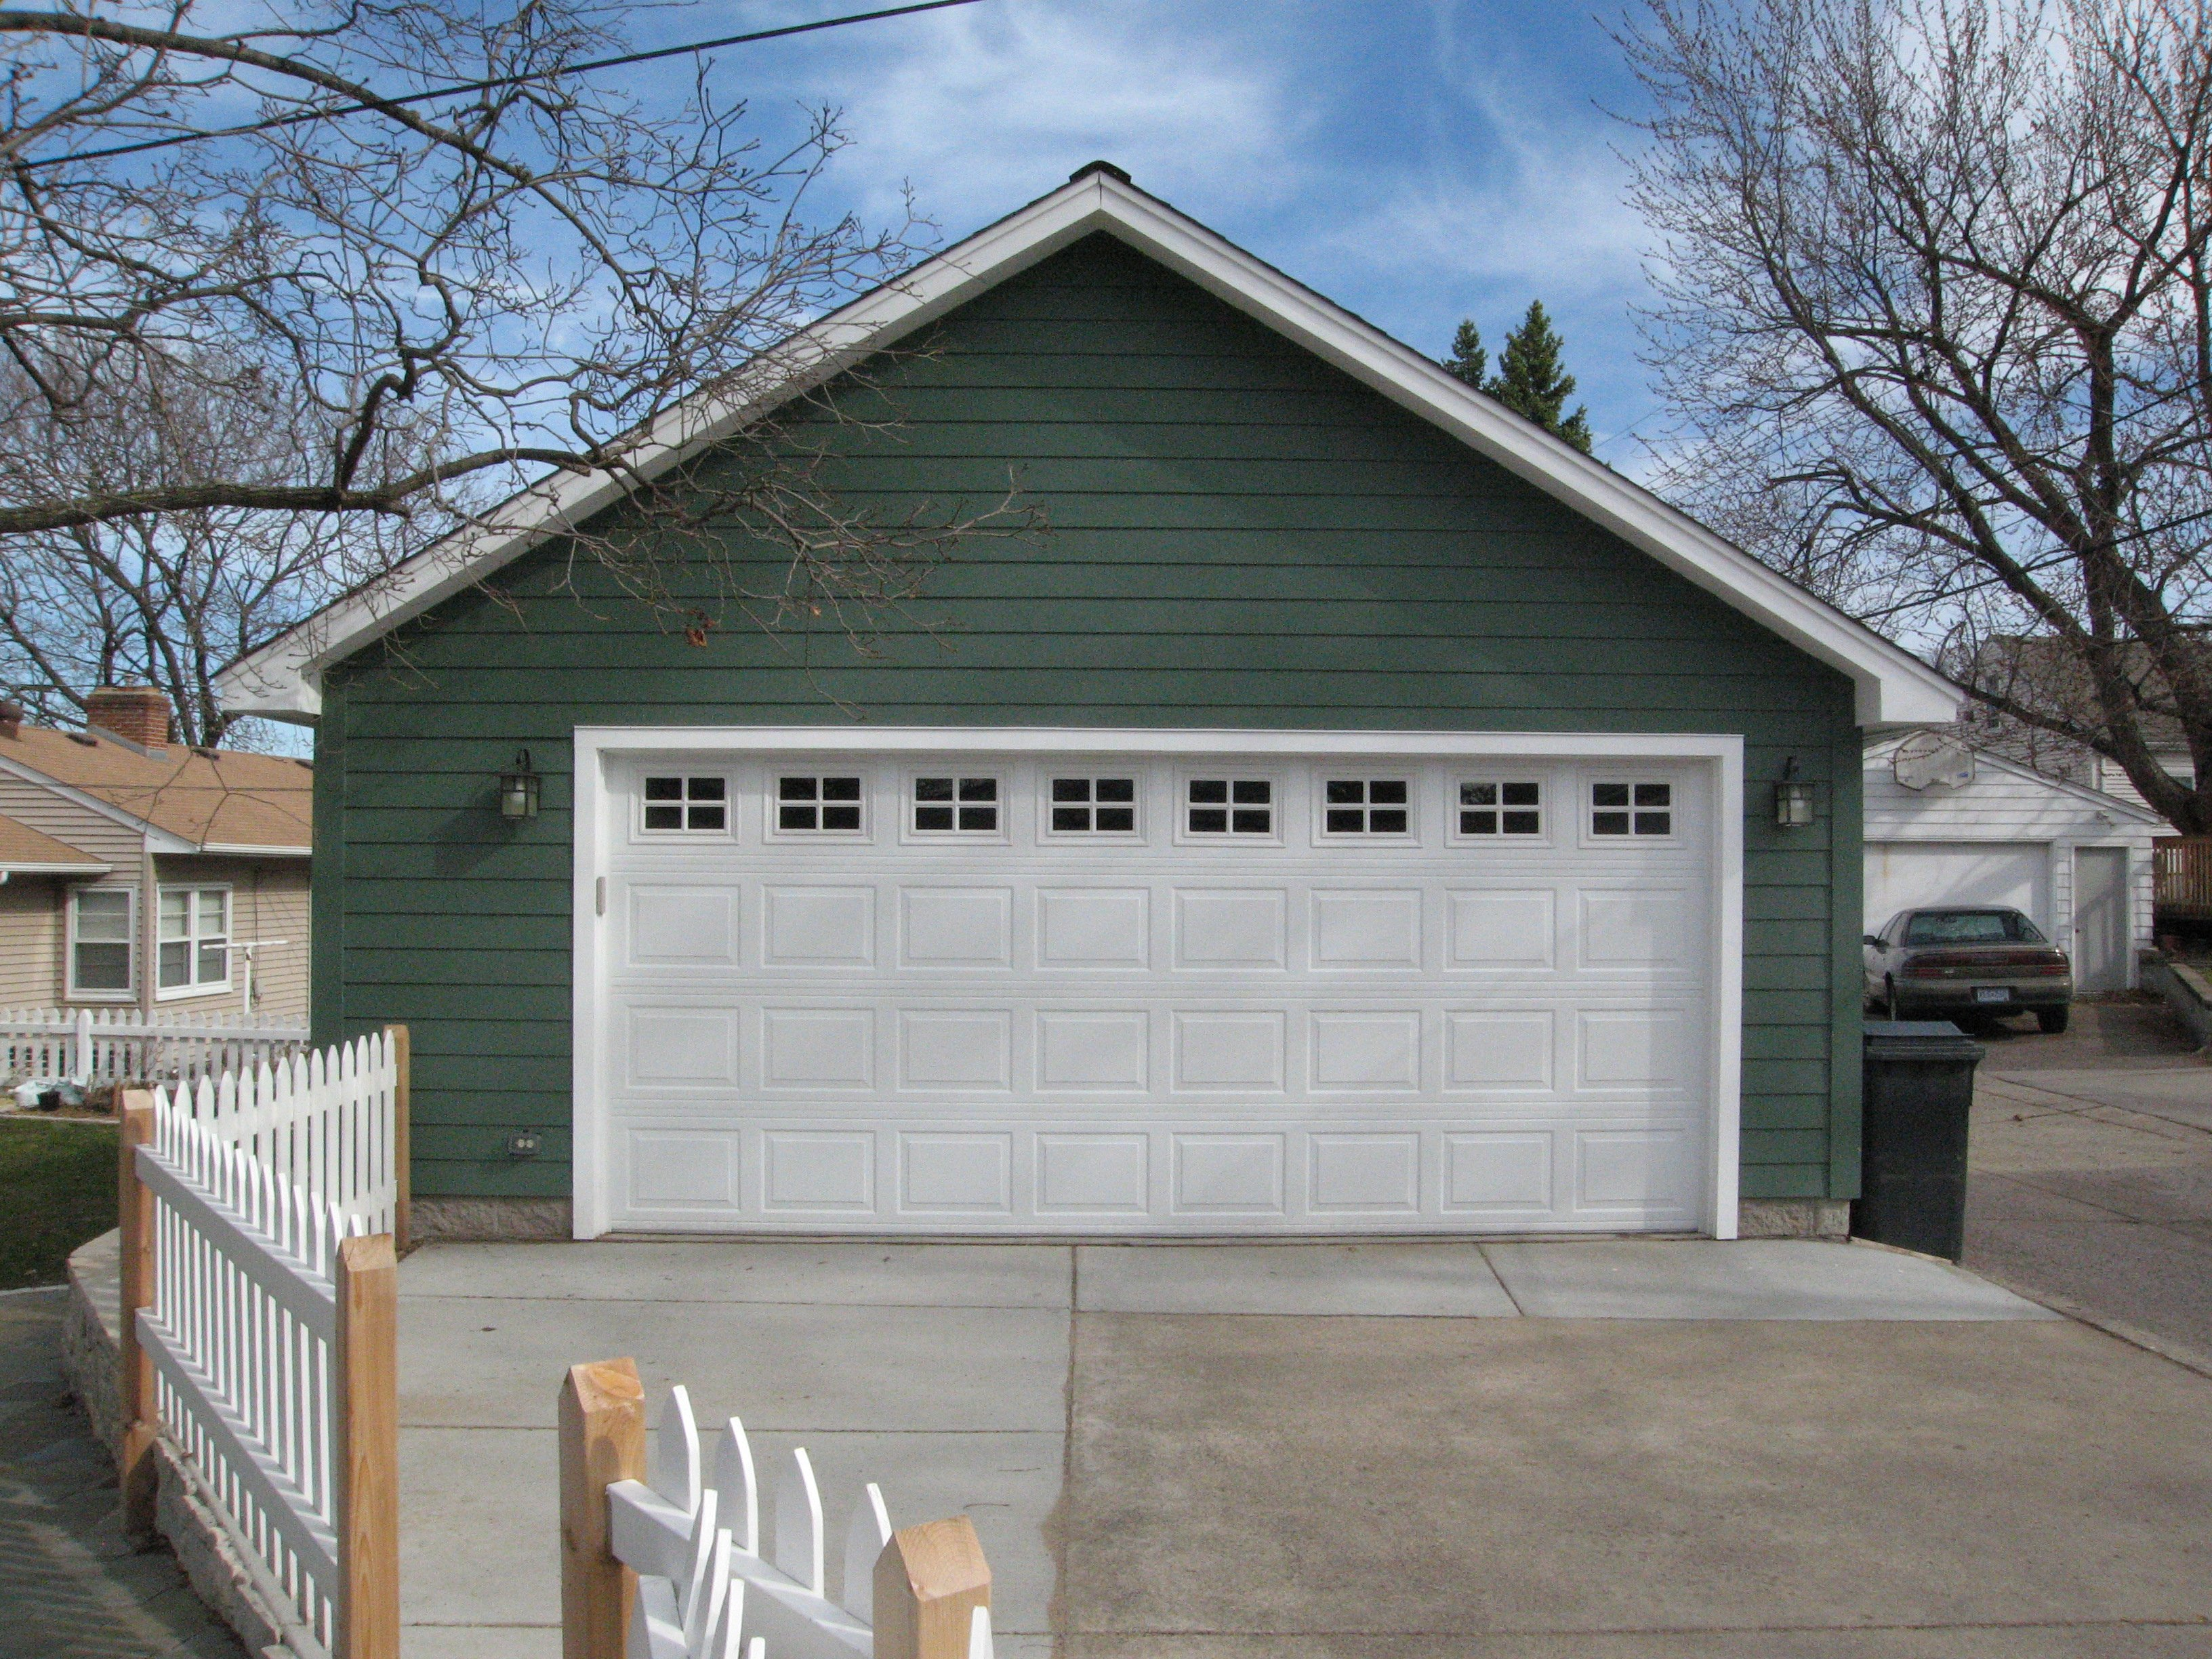 Free storage truss garage plans for Garage plans with storage